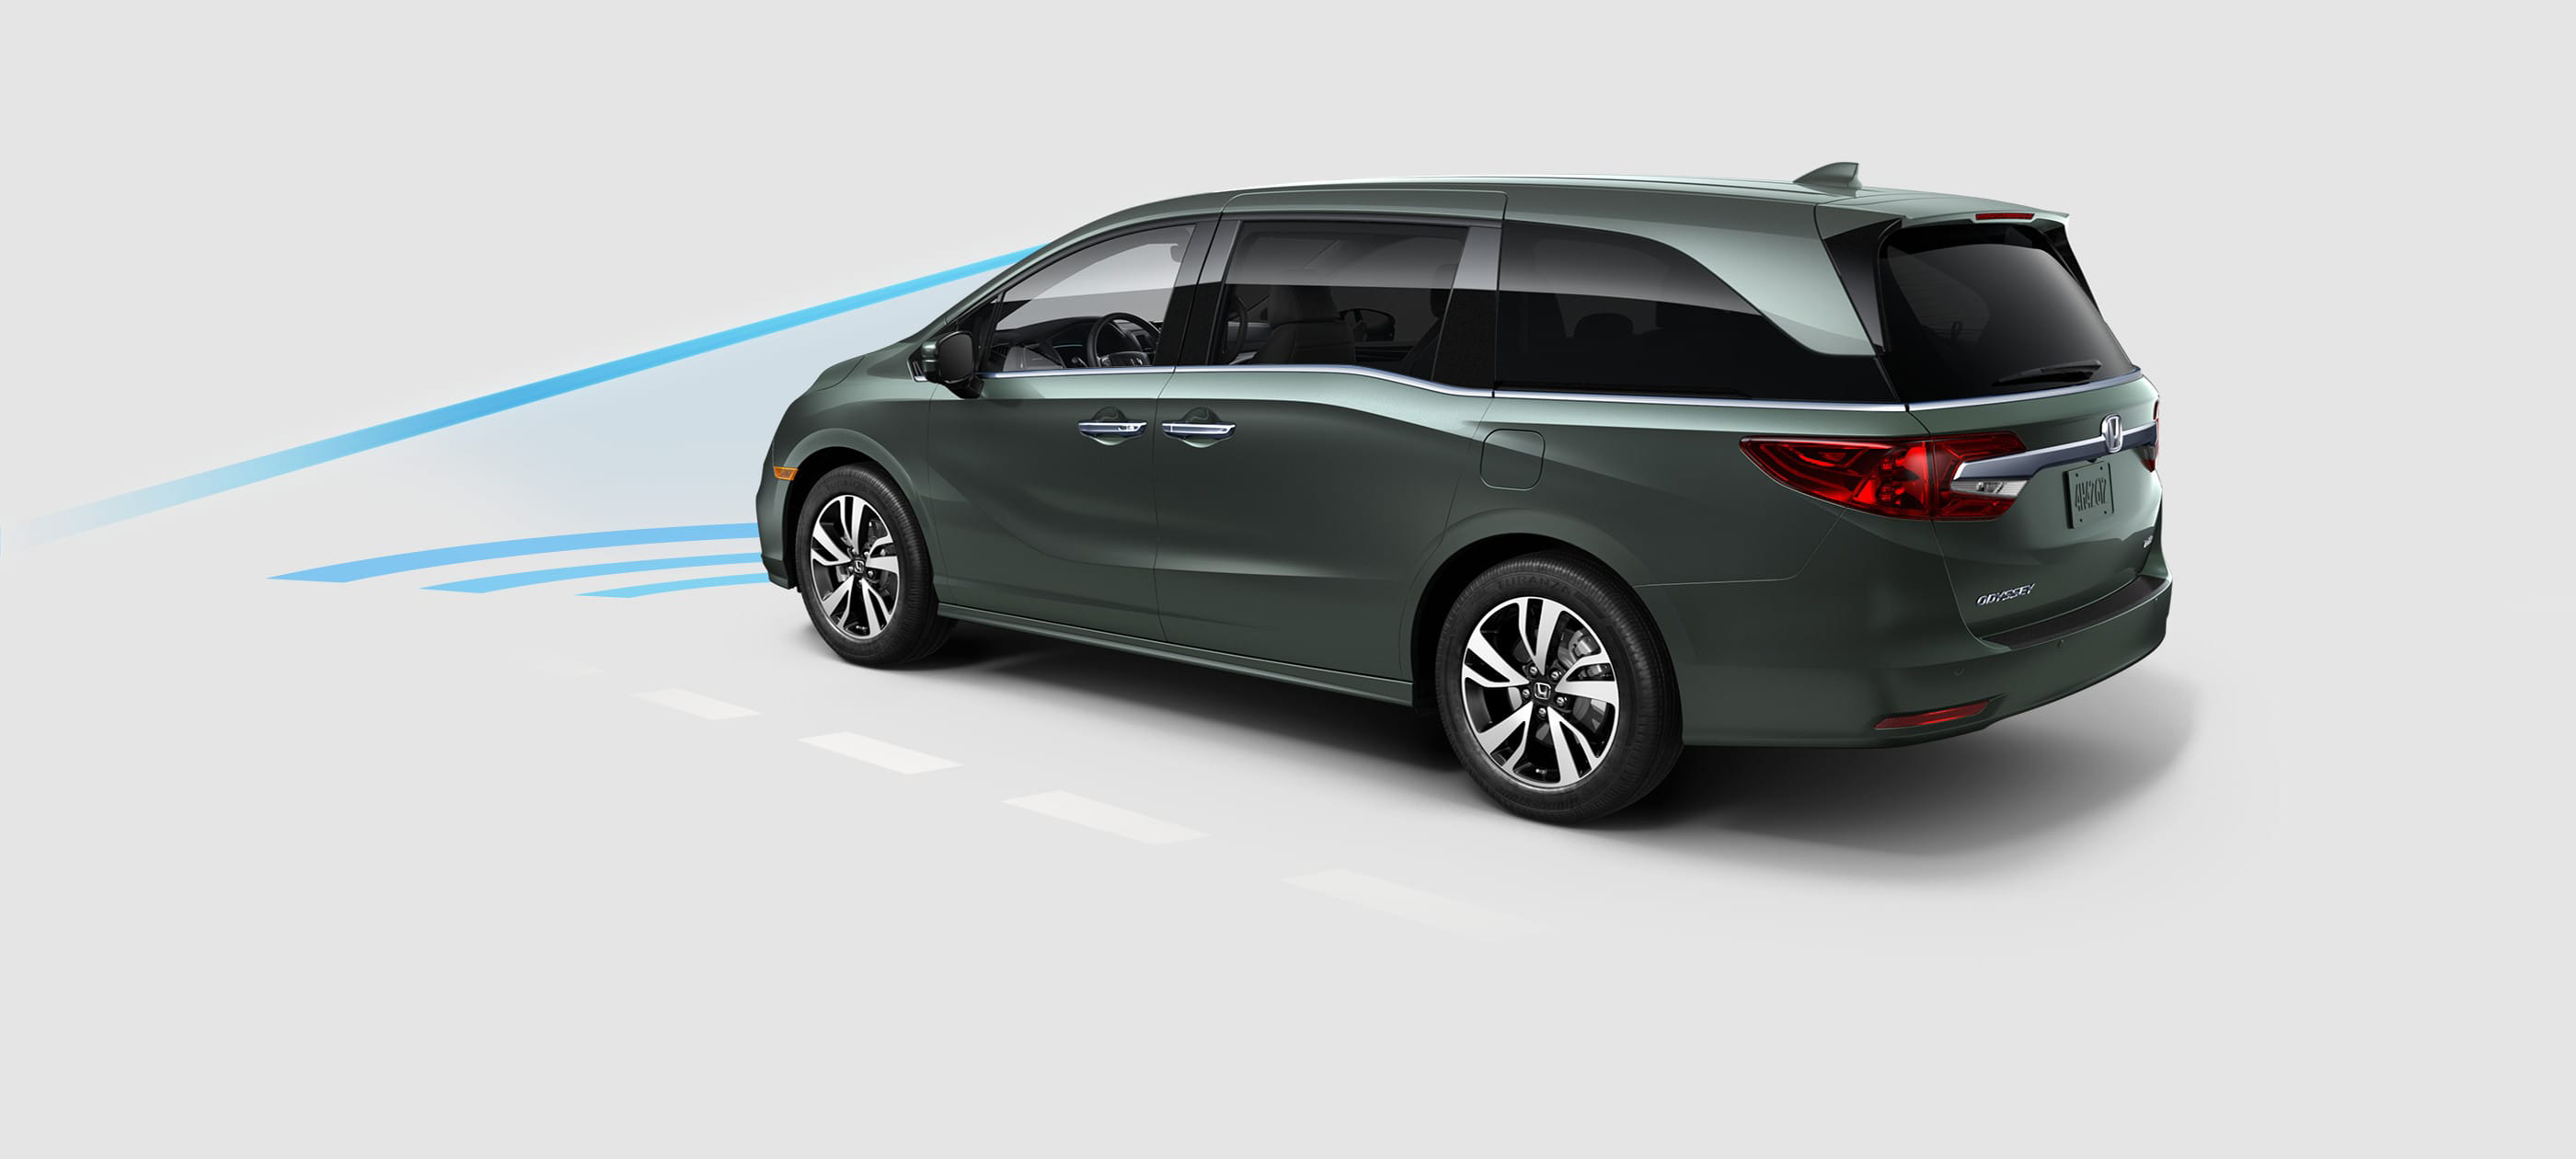 2019 Honda Odyssey Hawaii Honda Dealers Family Minivan In Hawaii